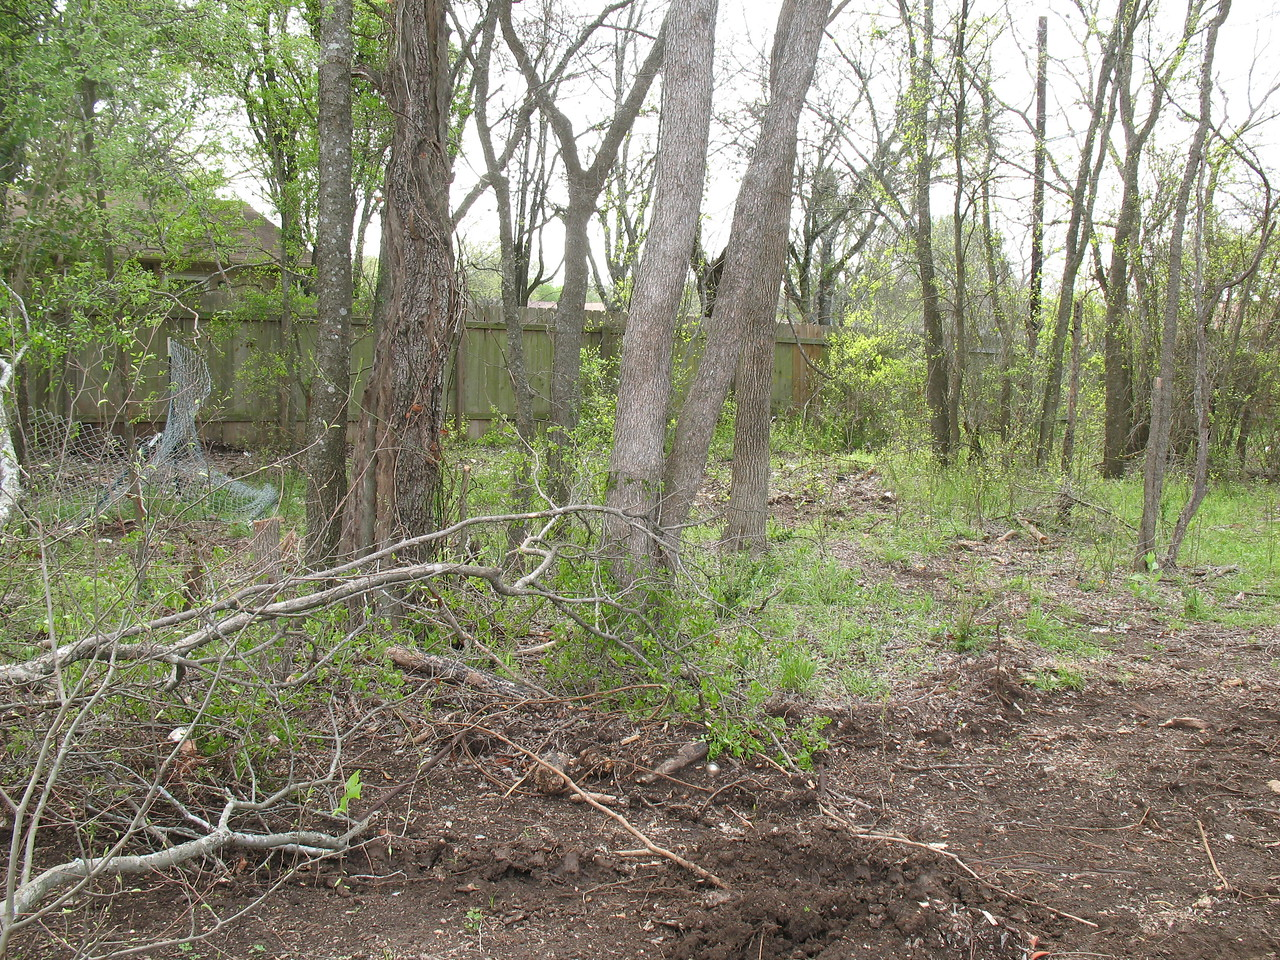 The backyard at our new house.  Look at how wooded it is!